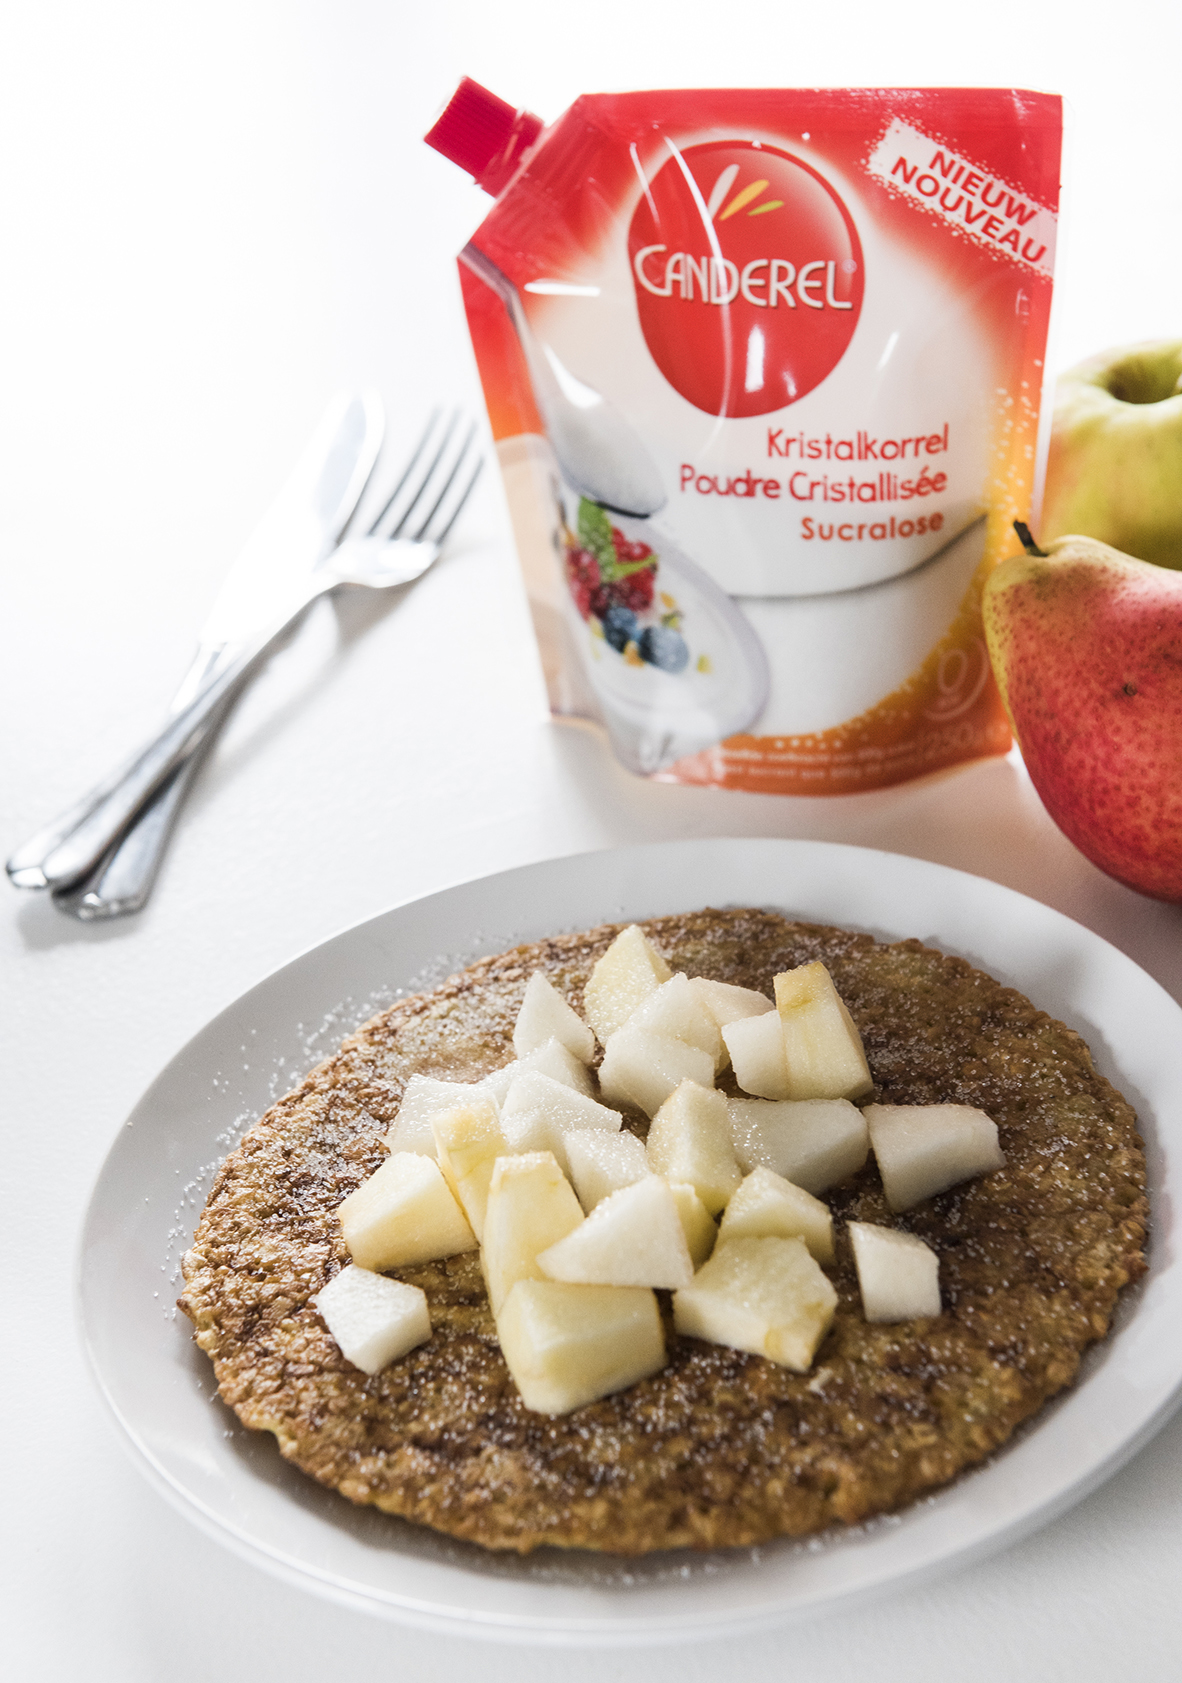 havermoutpannekoek-canderel_web